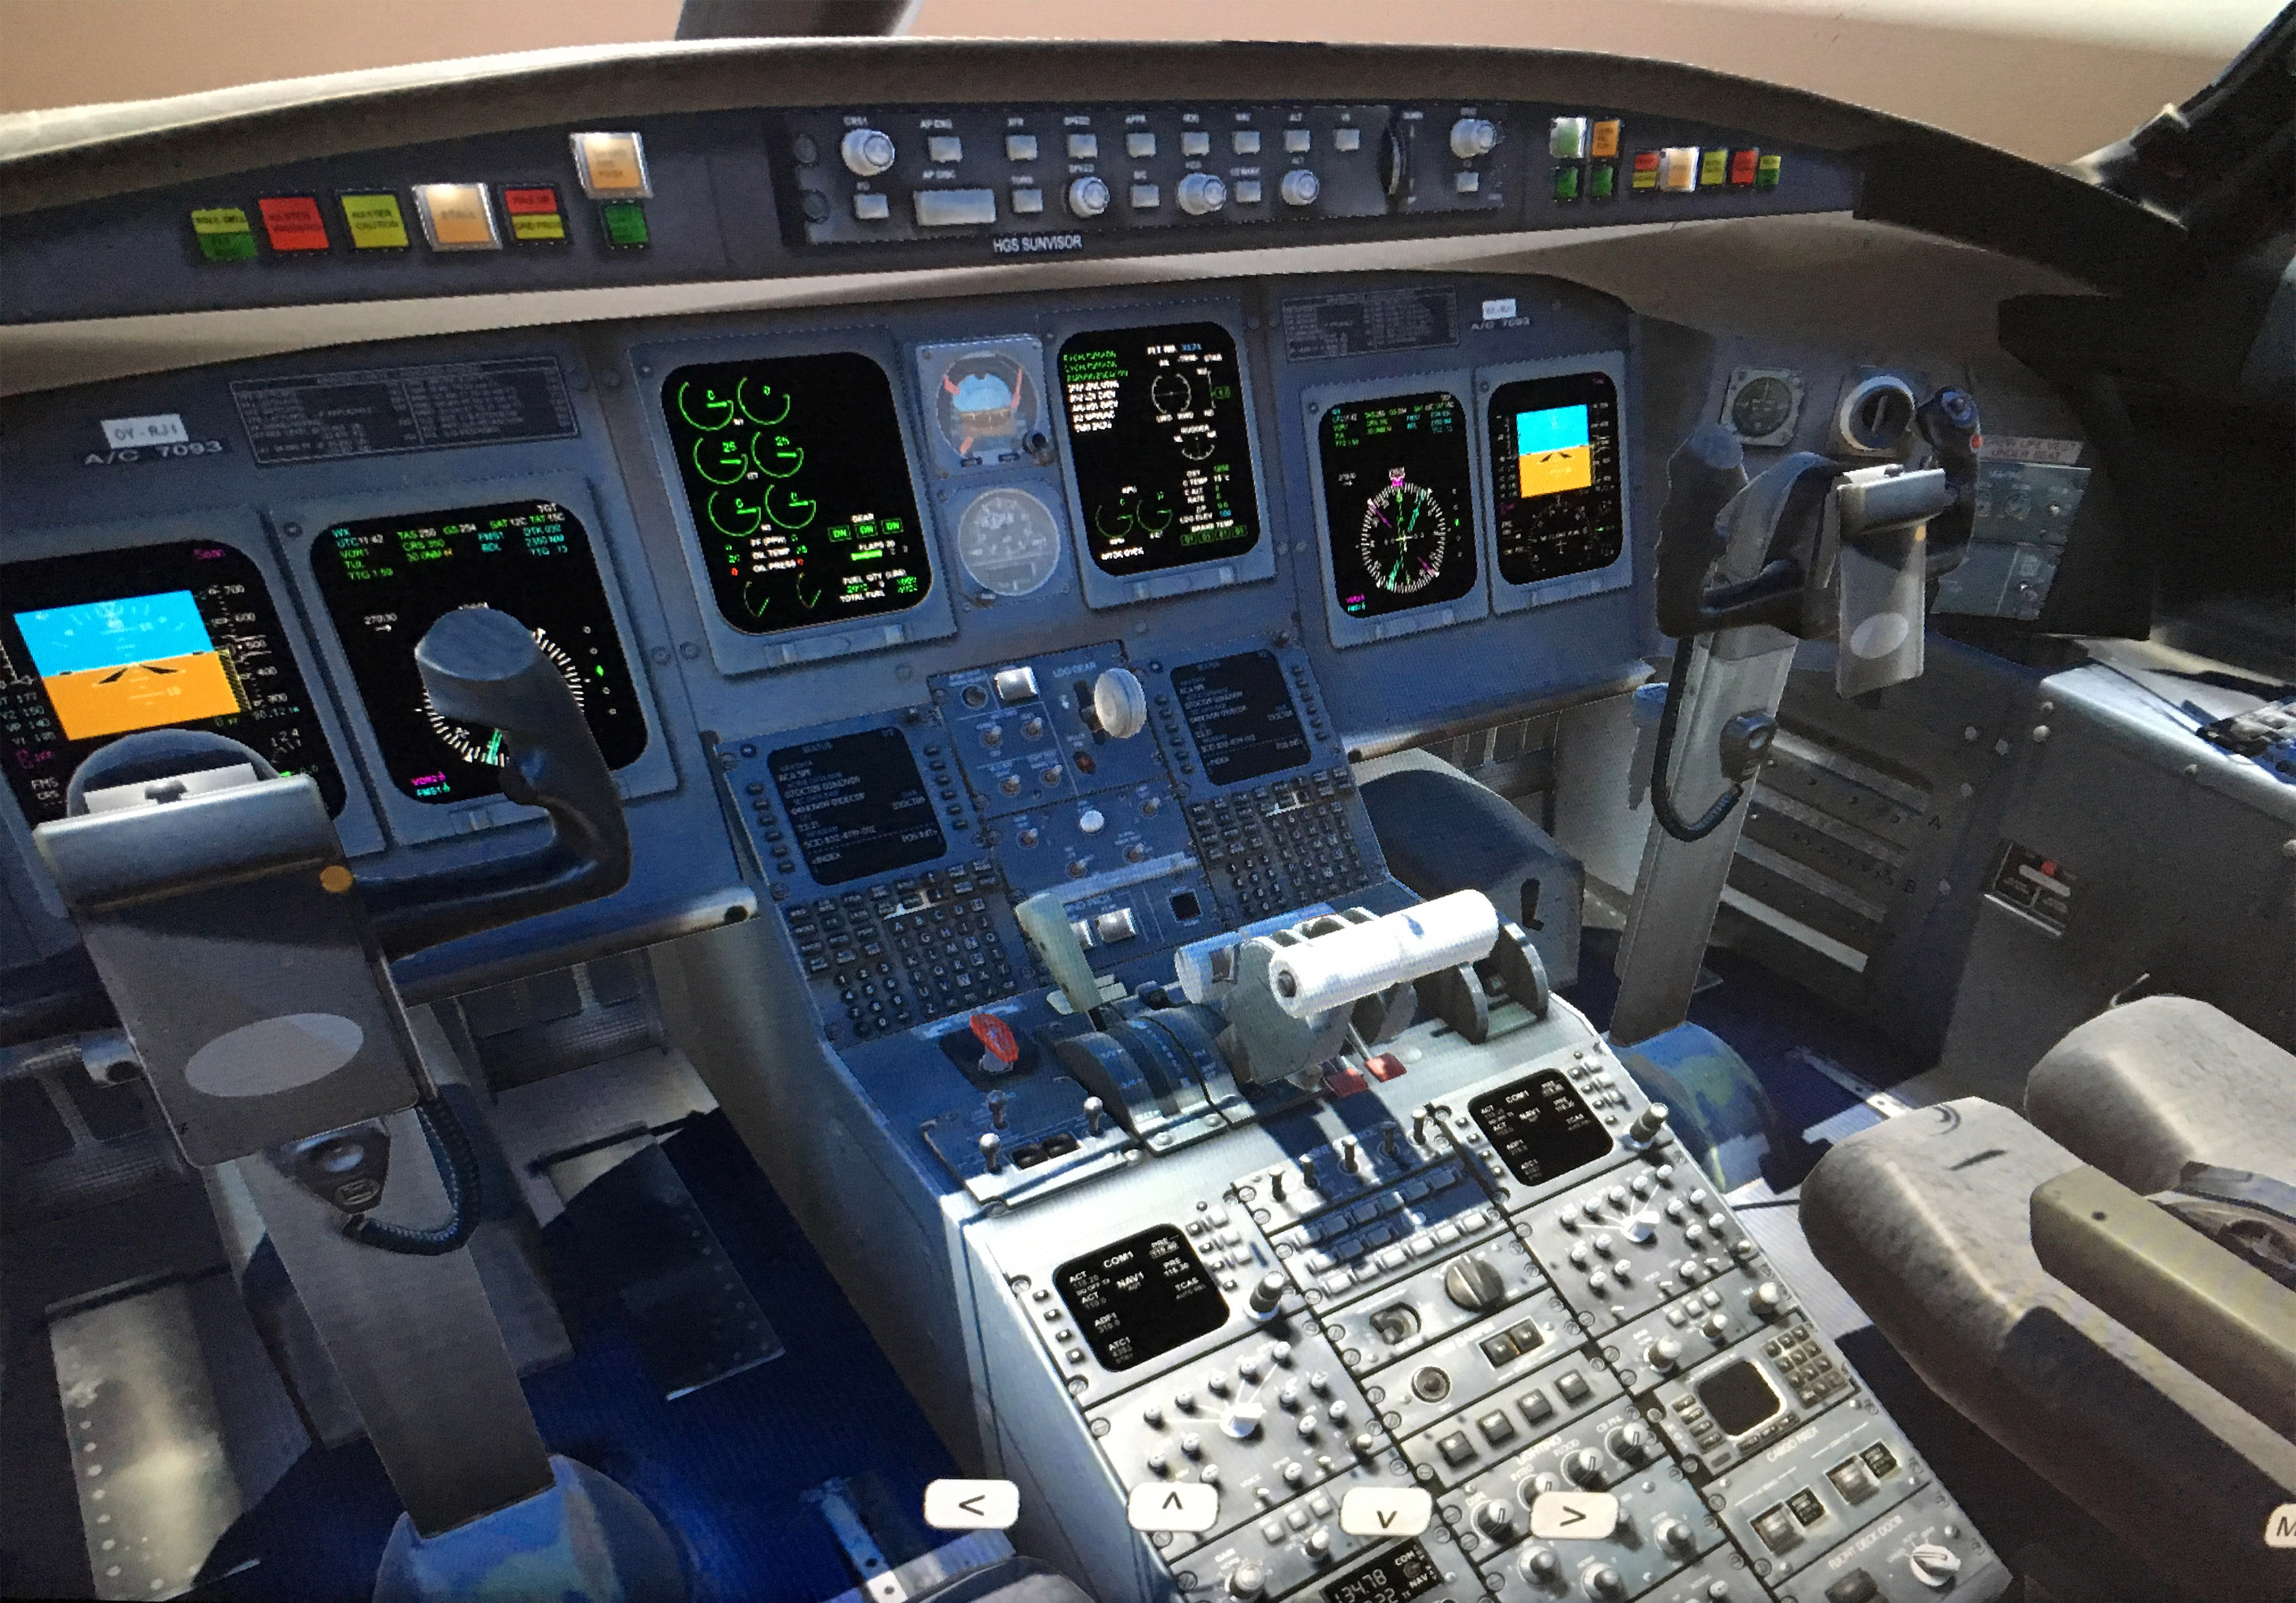 A CRJ200 jet cockpit is depicted in augmented reality technology at the Western Michigan College of Aviation. Photo courtesy of Lori Brown, Western Michigan College of Aviation.